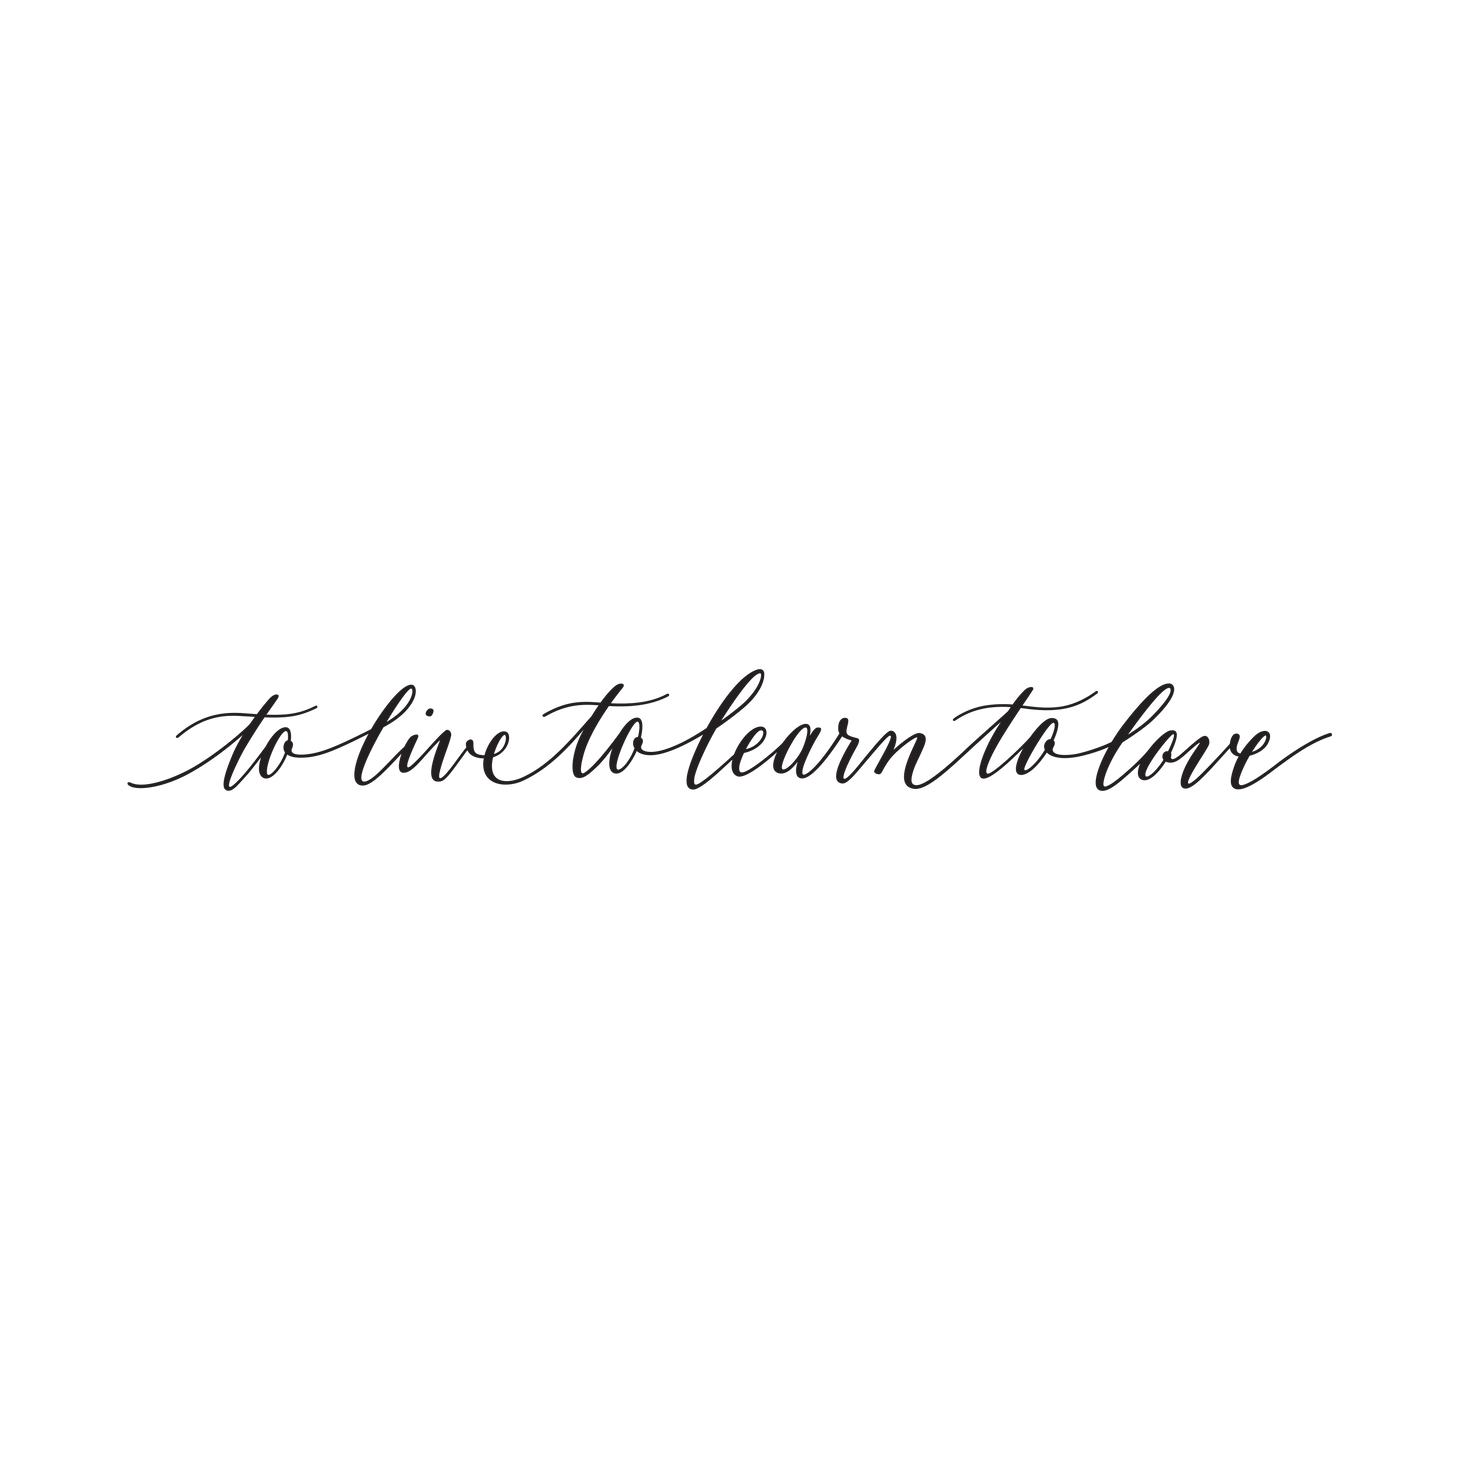 To Live To Learn To Love